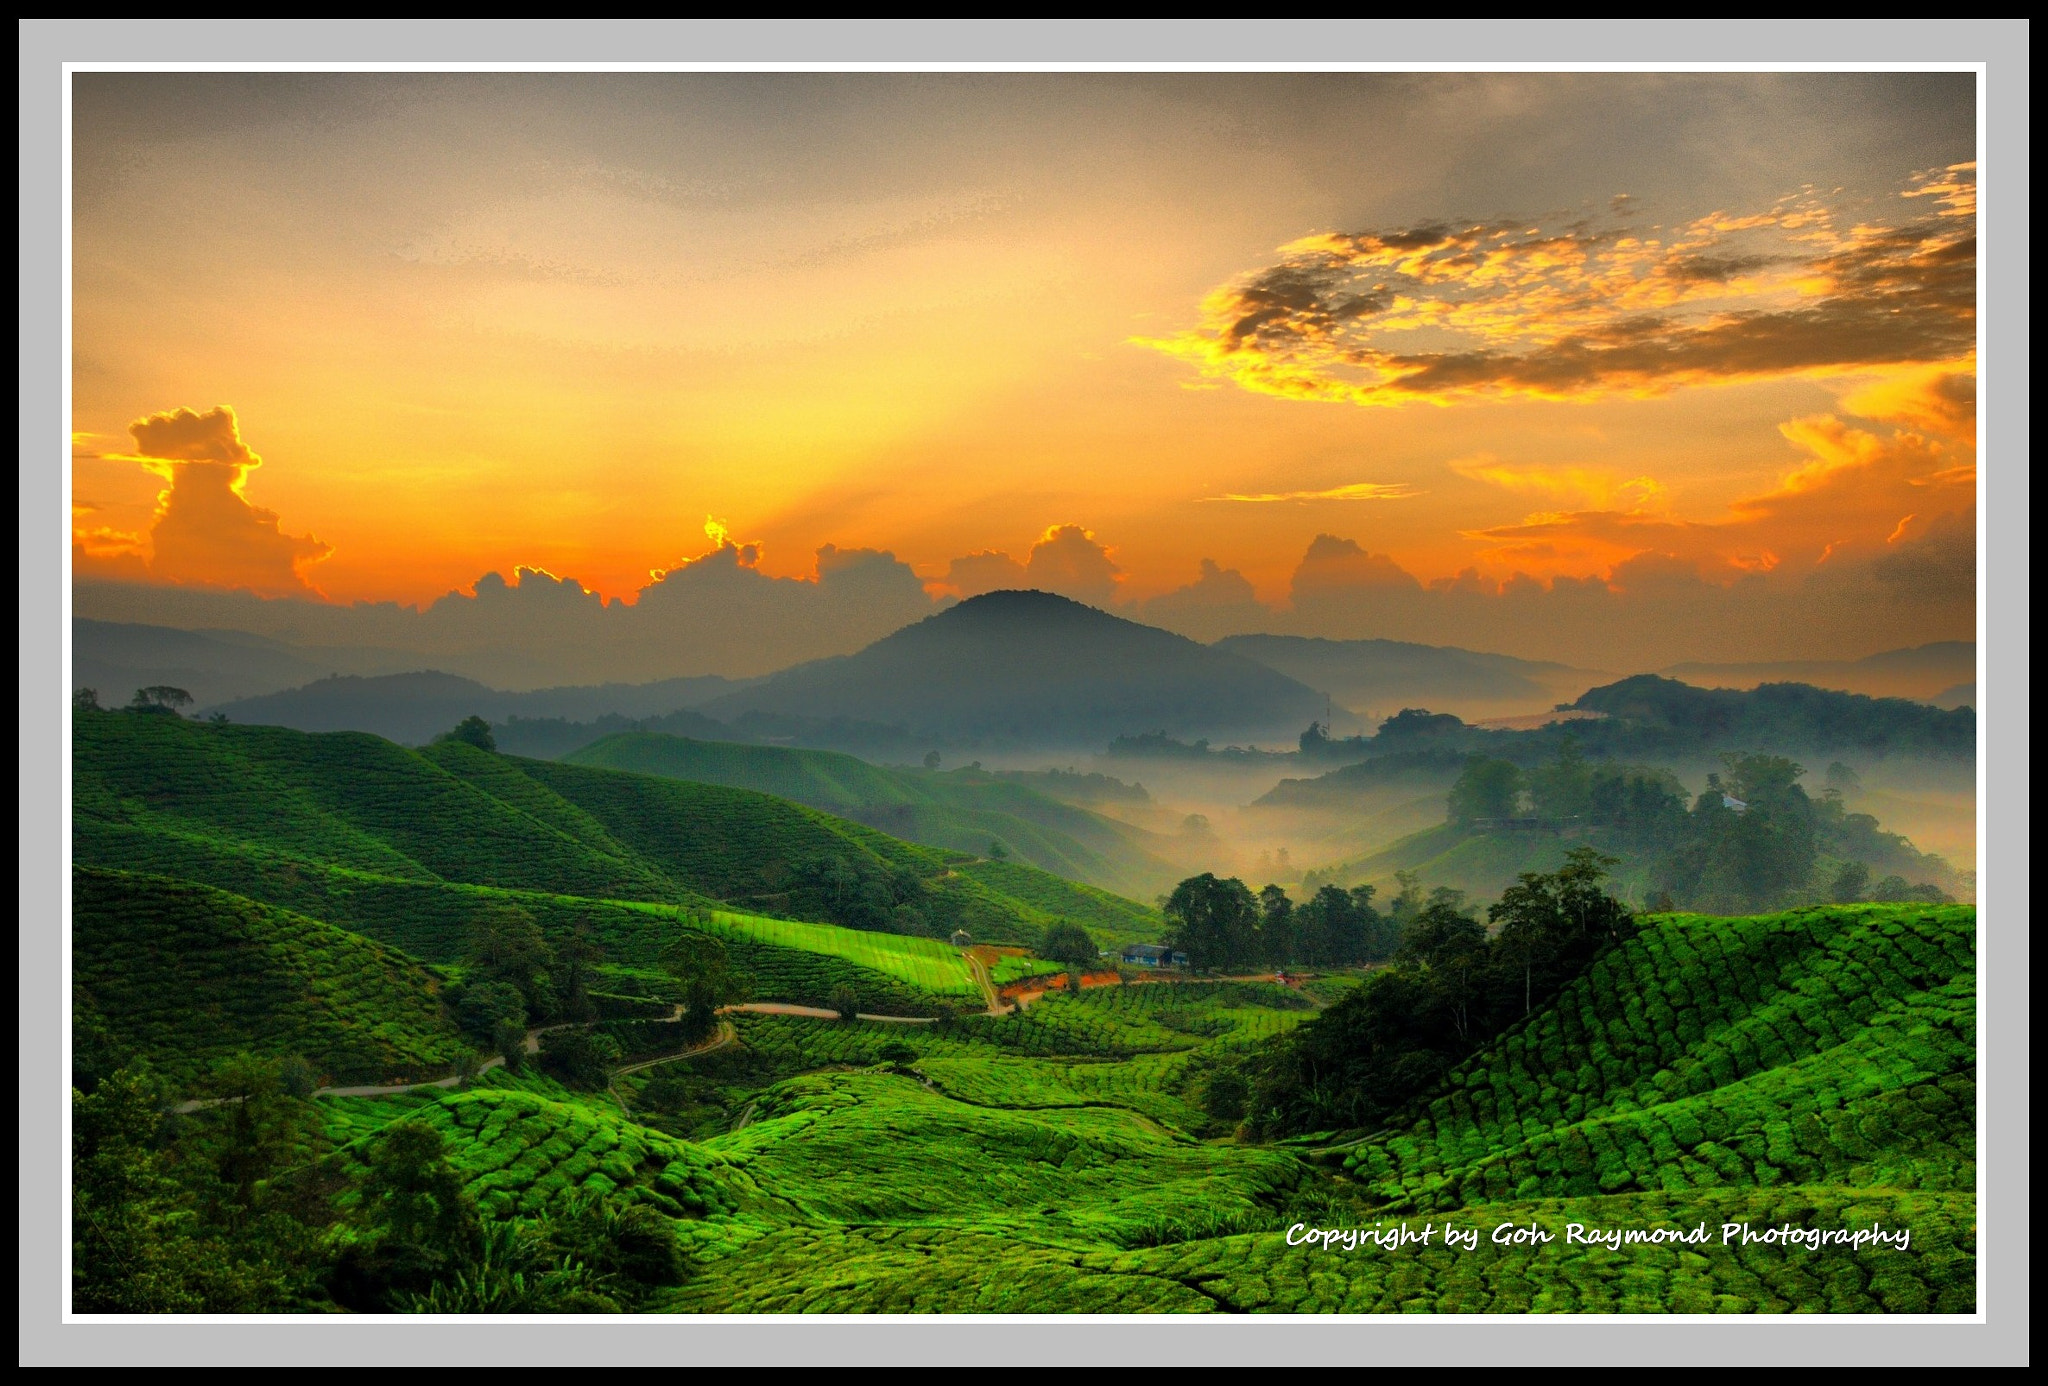 Photograph Sunrise @ Camera Highlands#1a by Goh Raymond on 500px